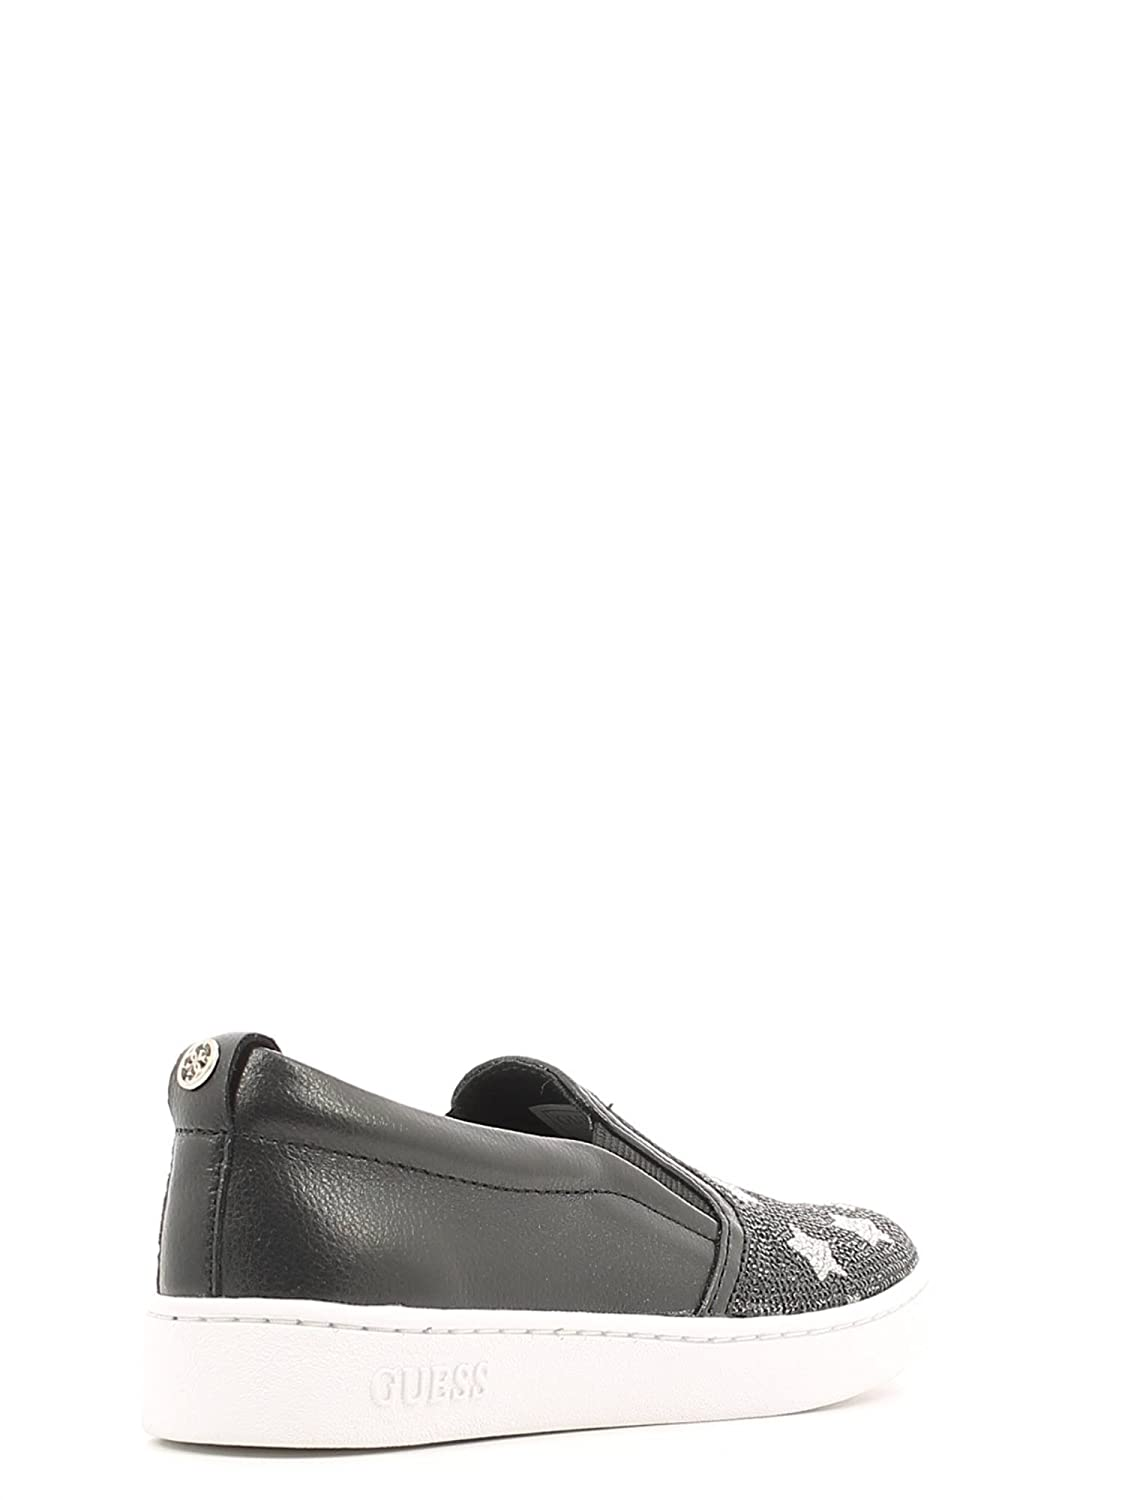 Guess Gewebe FLGLO3-ESU12 Slip On Damen Gewebe Guess f4b84f